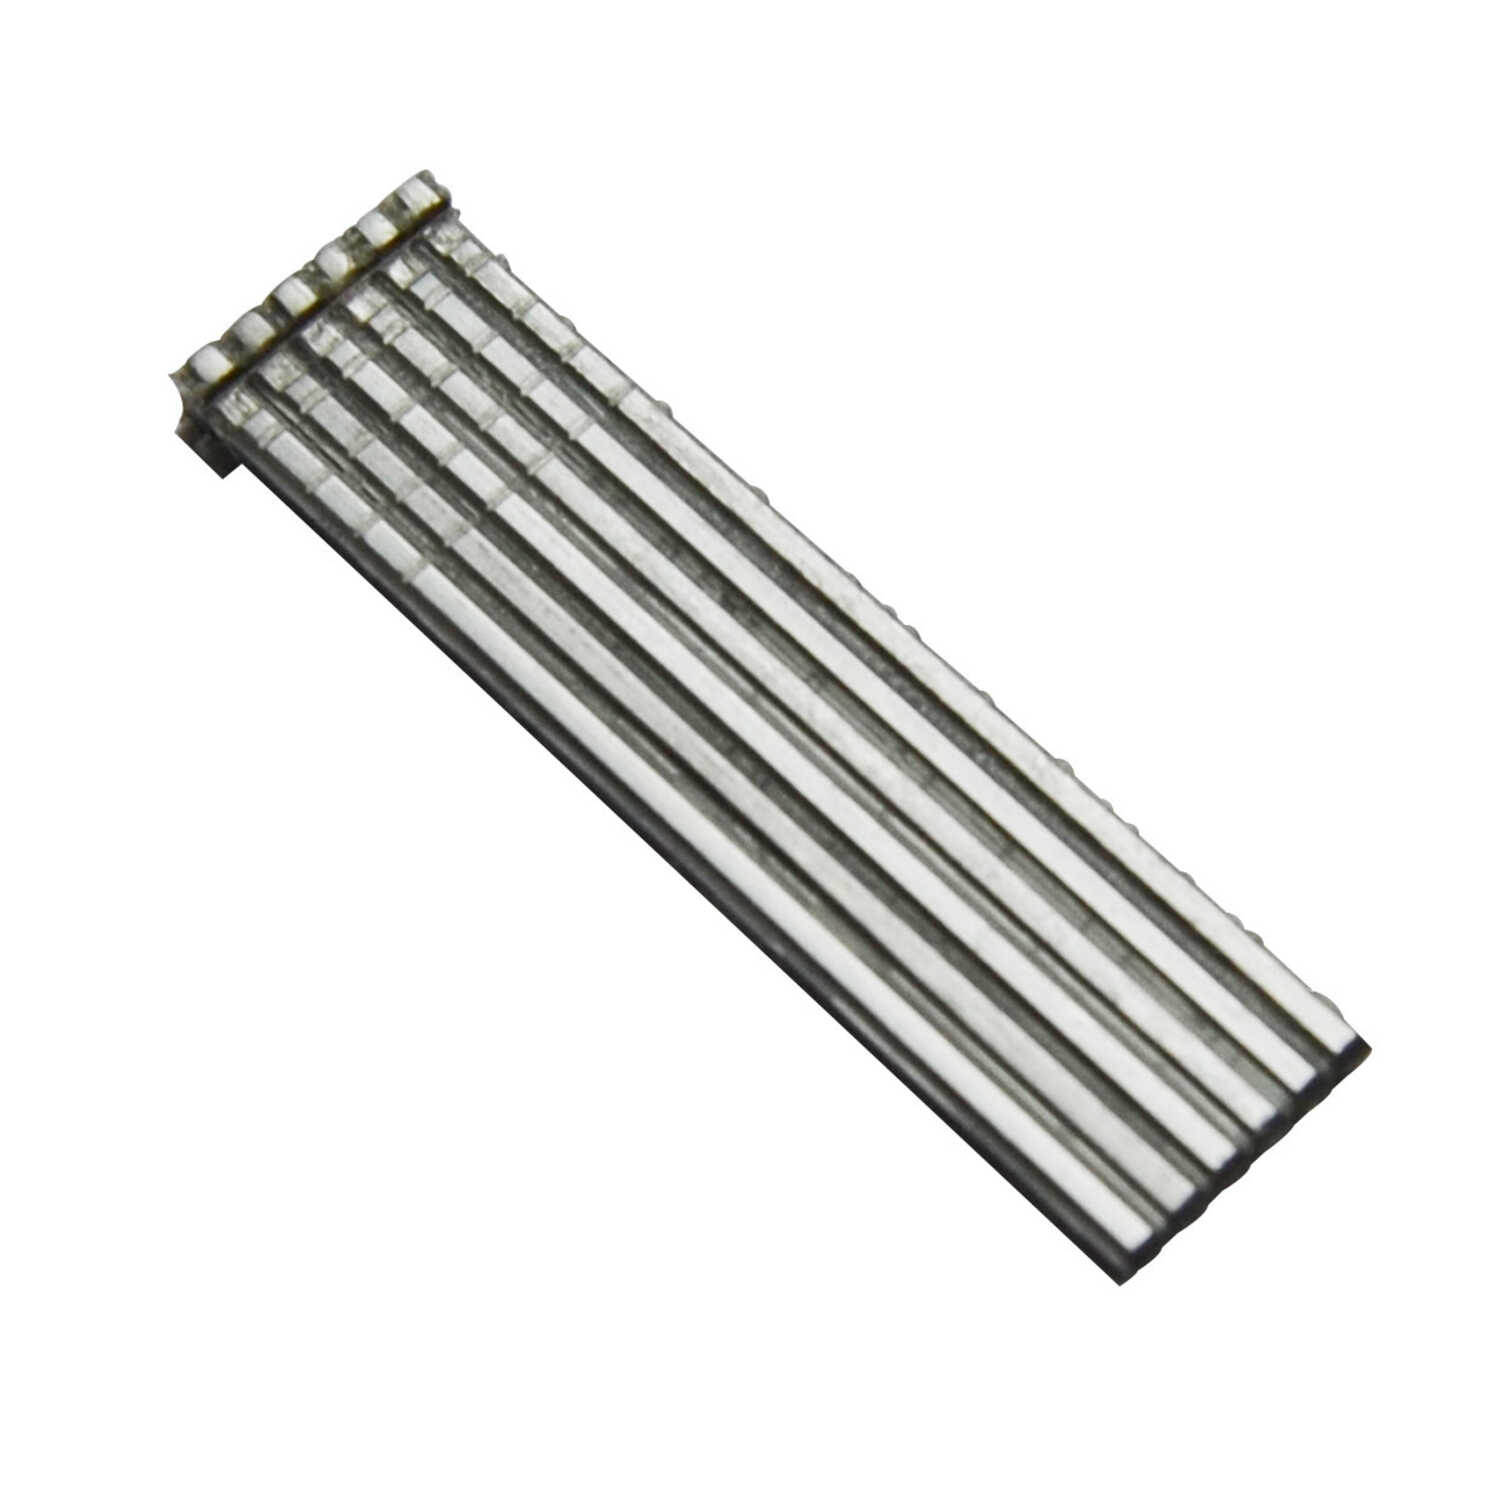 Grip-Rite  16 Ga. Smooth Shank  Straight Strip  Finish Nails  2 in. L x 0.06 in. Dia. 1 pk